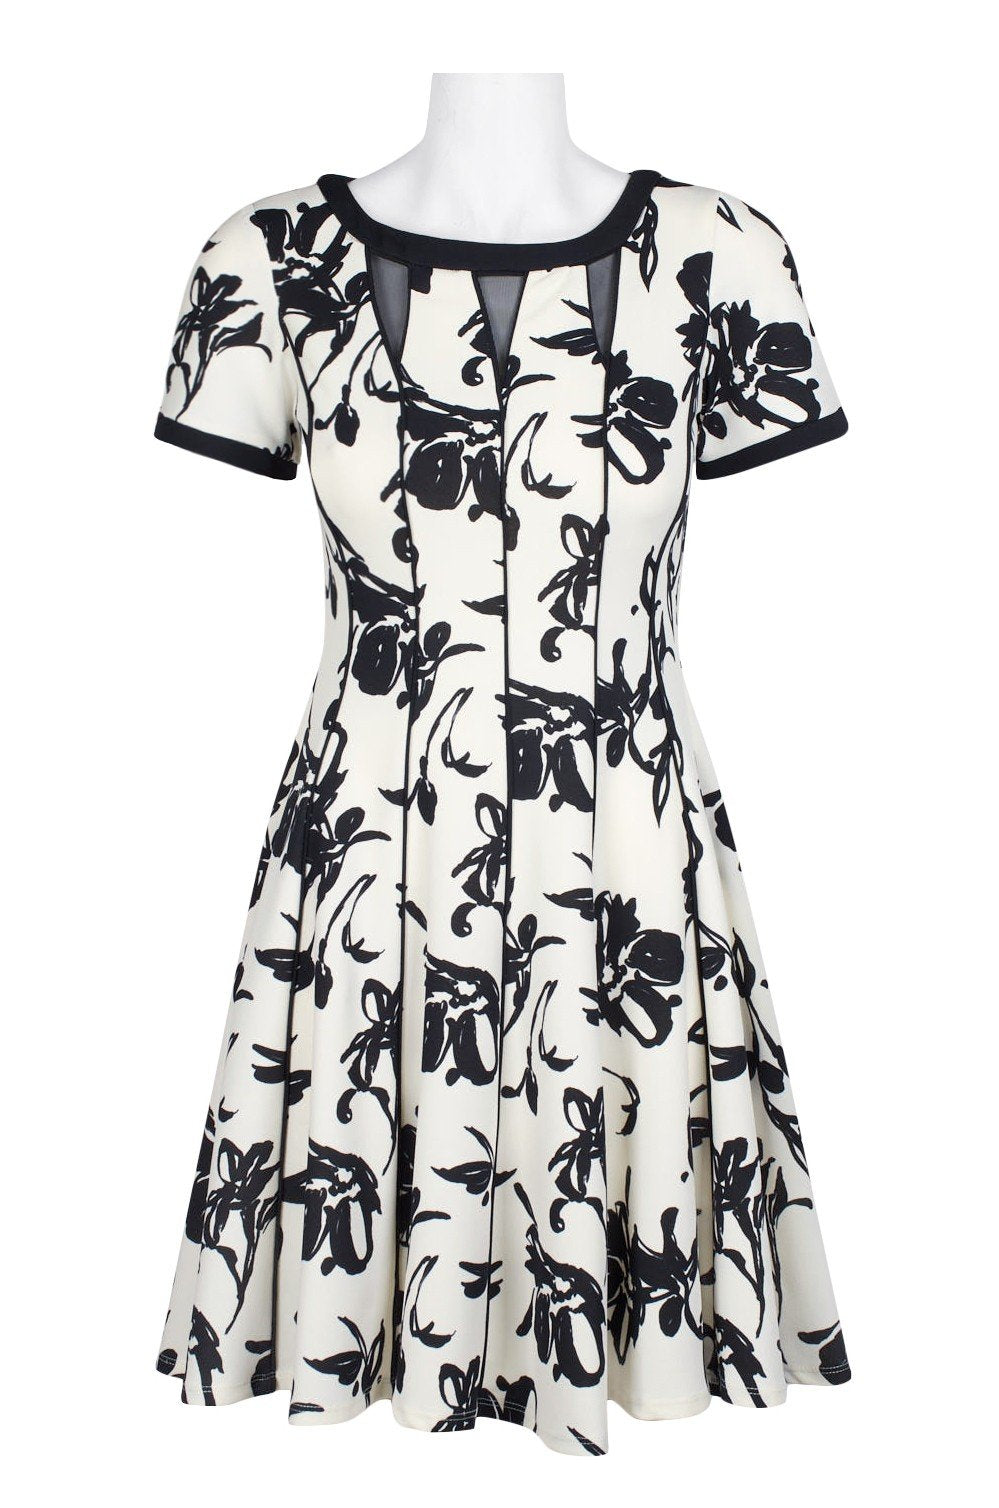 Taylor - 1228M Floral Print Bateau A-line Dress In White and Black